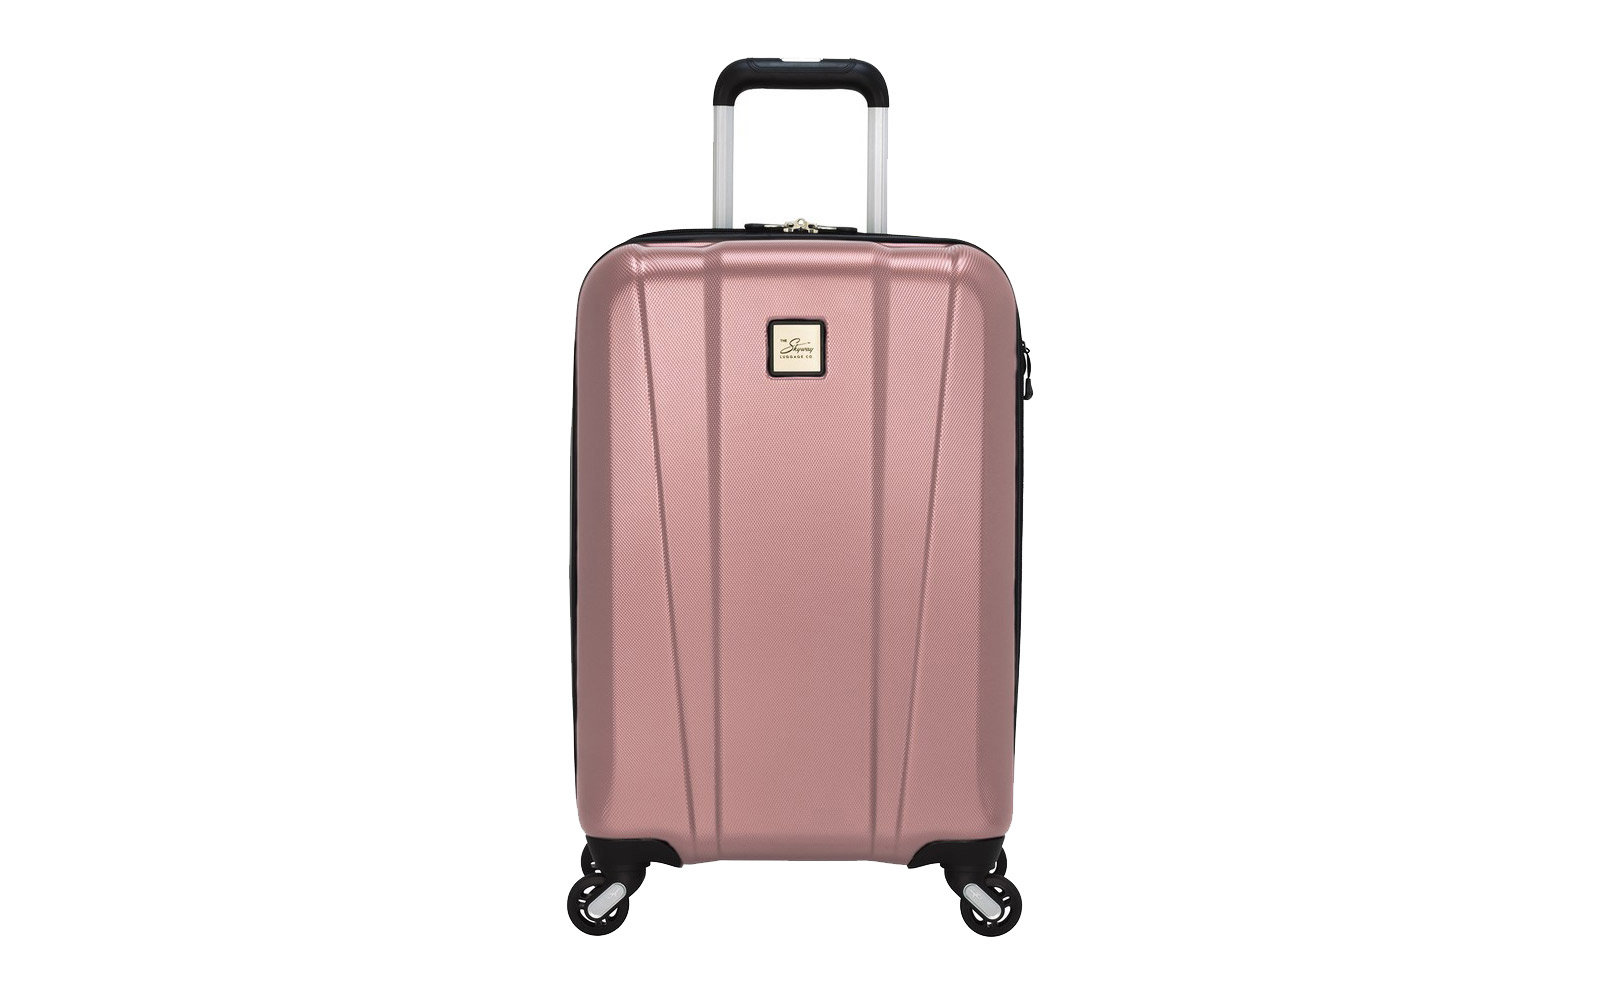 skyway black friday luggage deals 2018